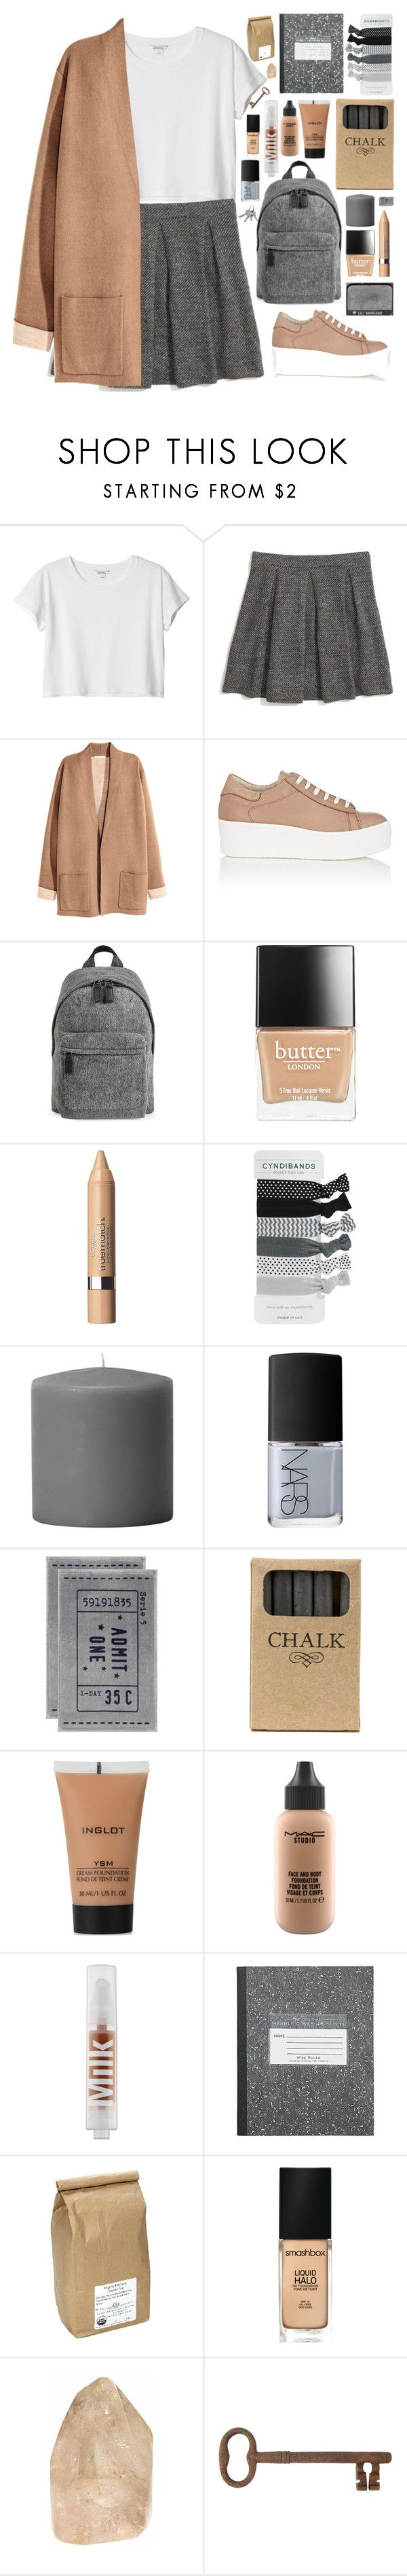 """Без названия #111"" by sinyukovayulya ❤ liked on Polyvore featuring Monki, Madewell, Barneys New York, Marc Jacobs, Butter London, Anrealage, NARS Cosmetics, H&M, Jayson Home and Inglot"